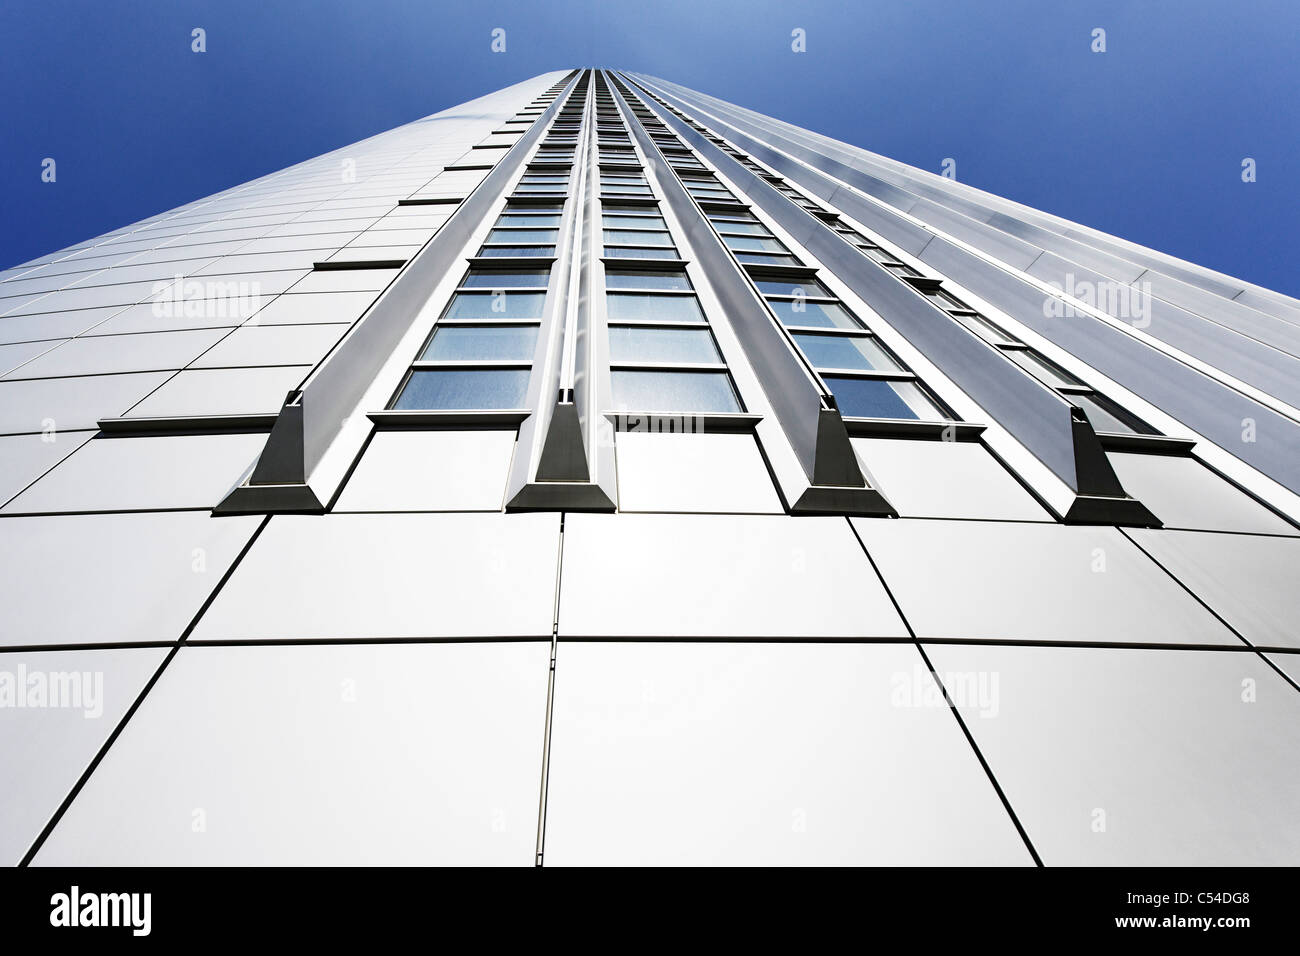 Frankfurt am Main, Hesse, Germany, Europe, Hesse - Stock Image